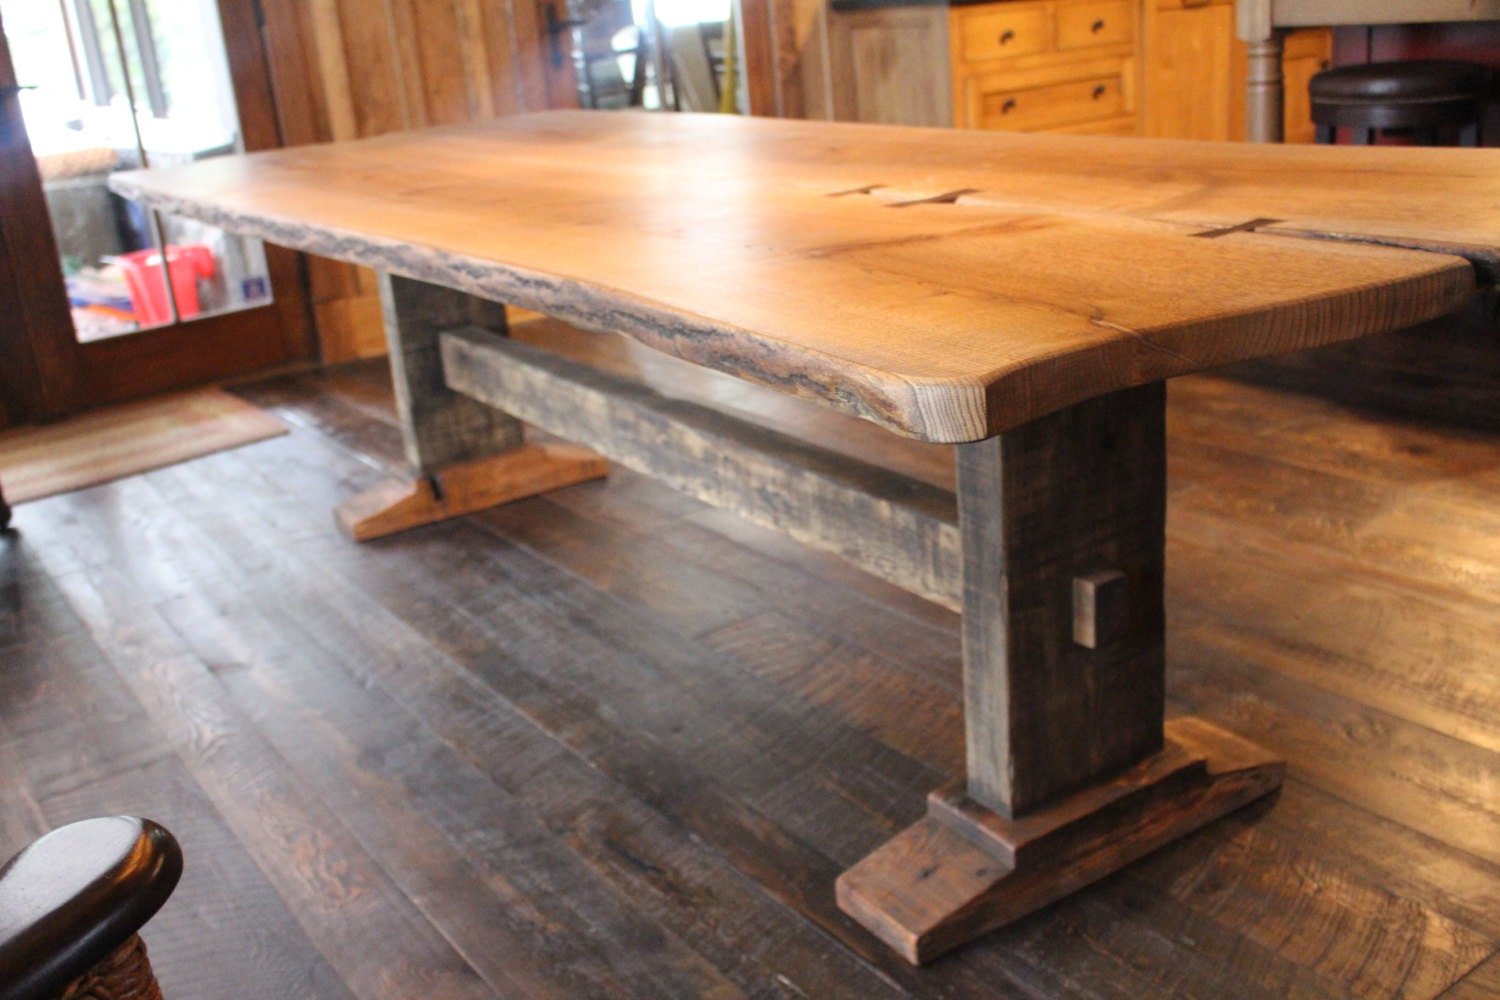 live edge oak harvest table with trestle base and mortise and